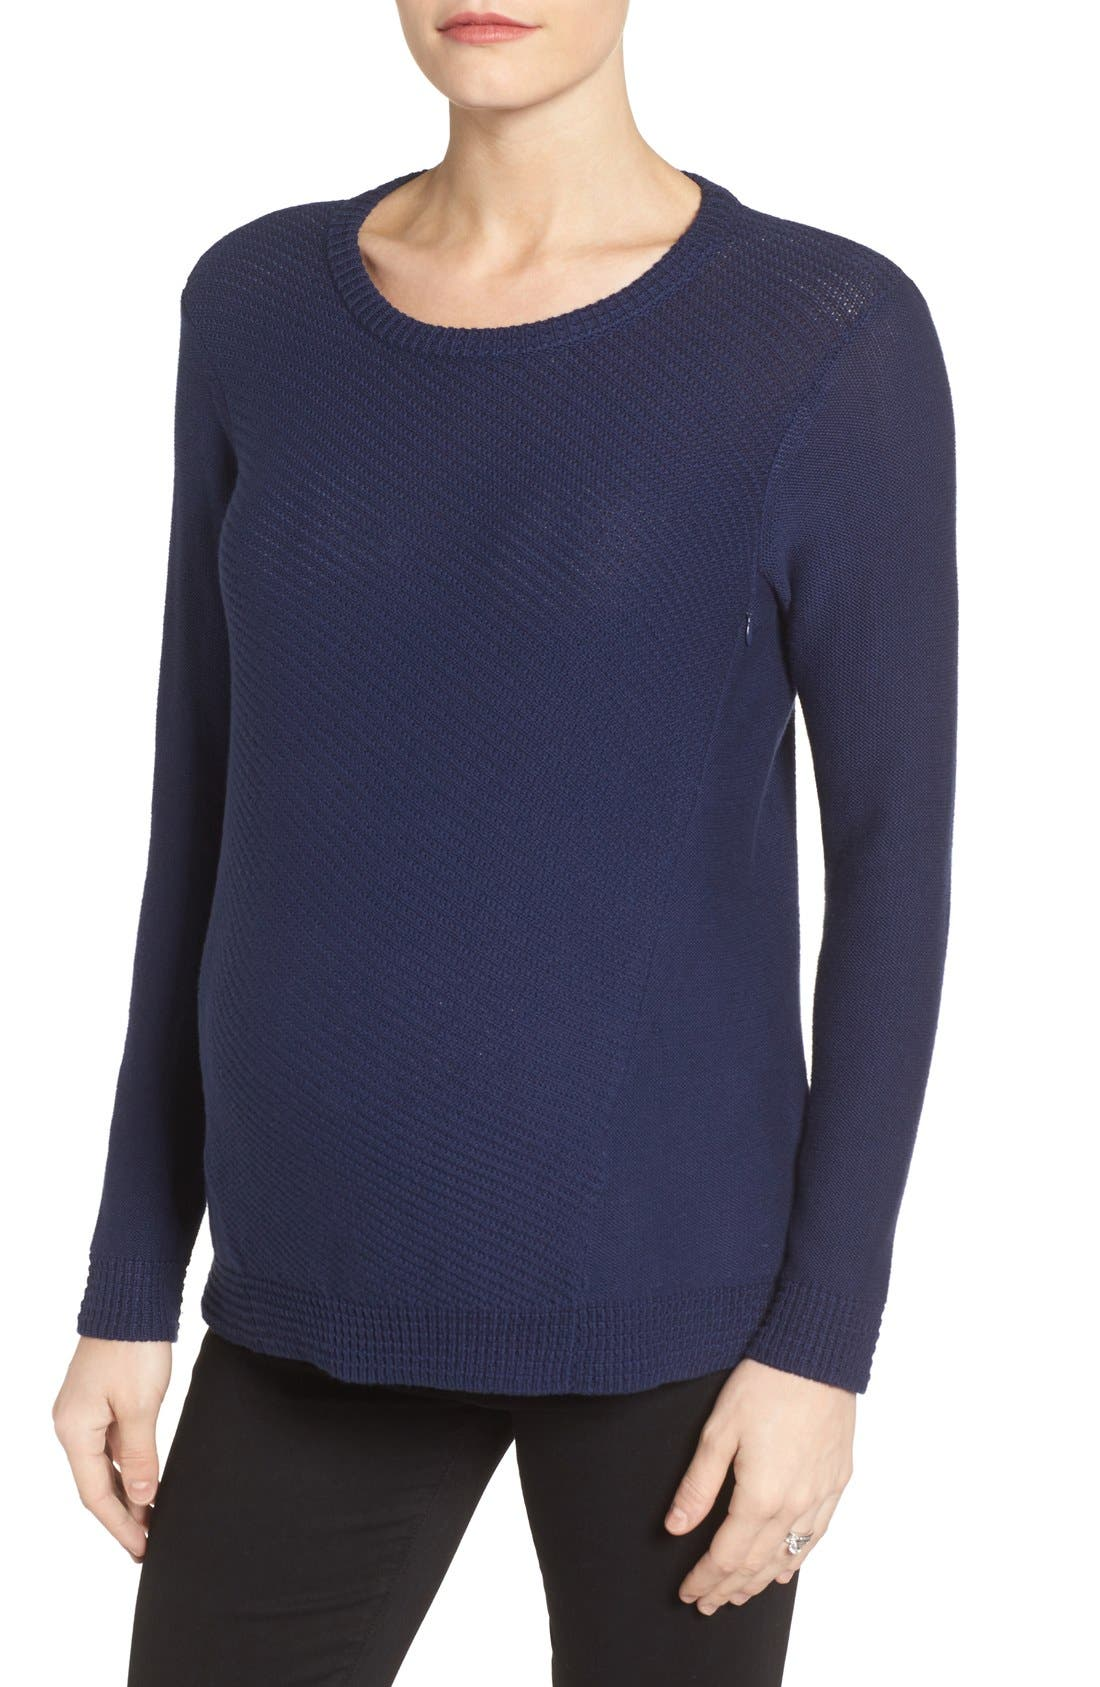 Wiley Maternity/Nursing Sweatshirt,                         Main,                         color, Navy